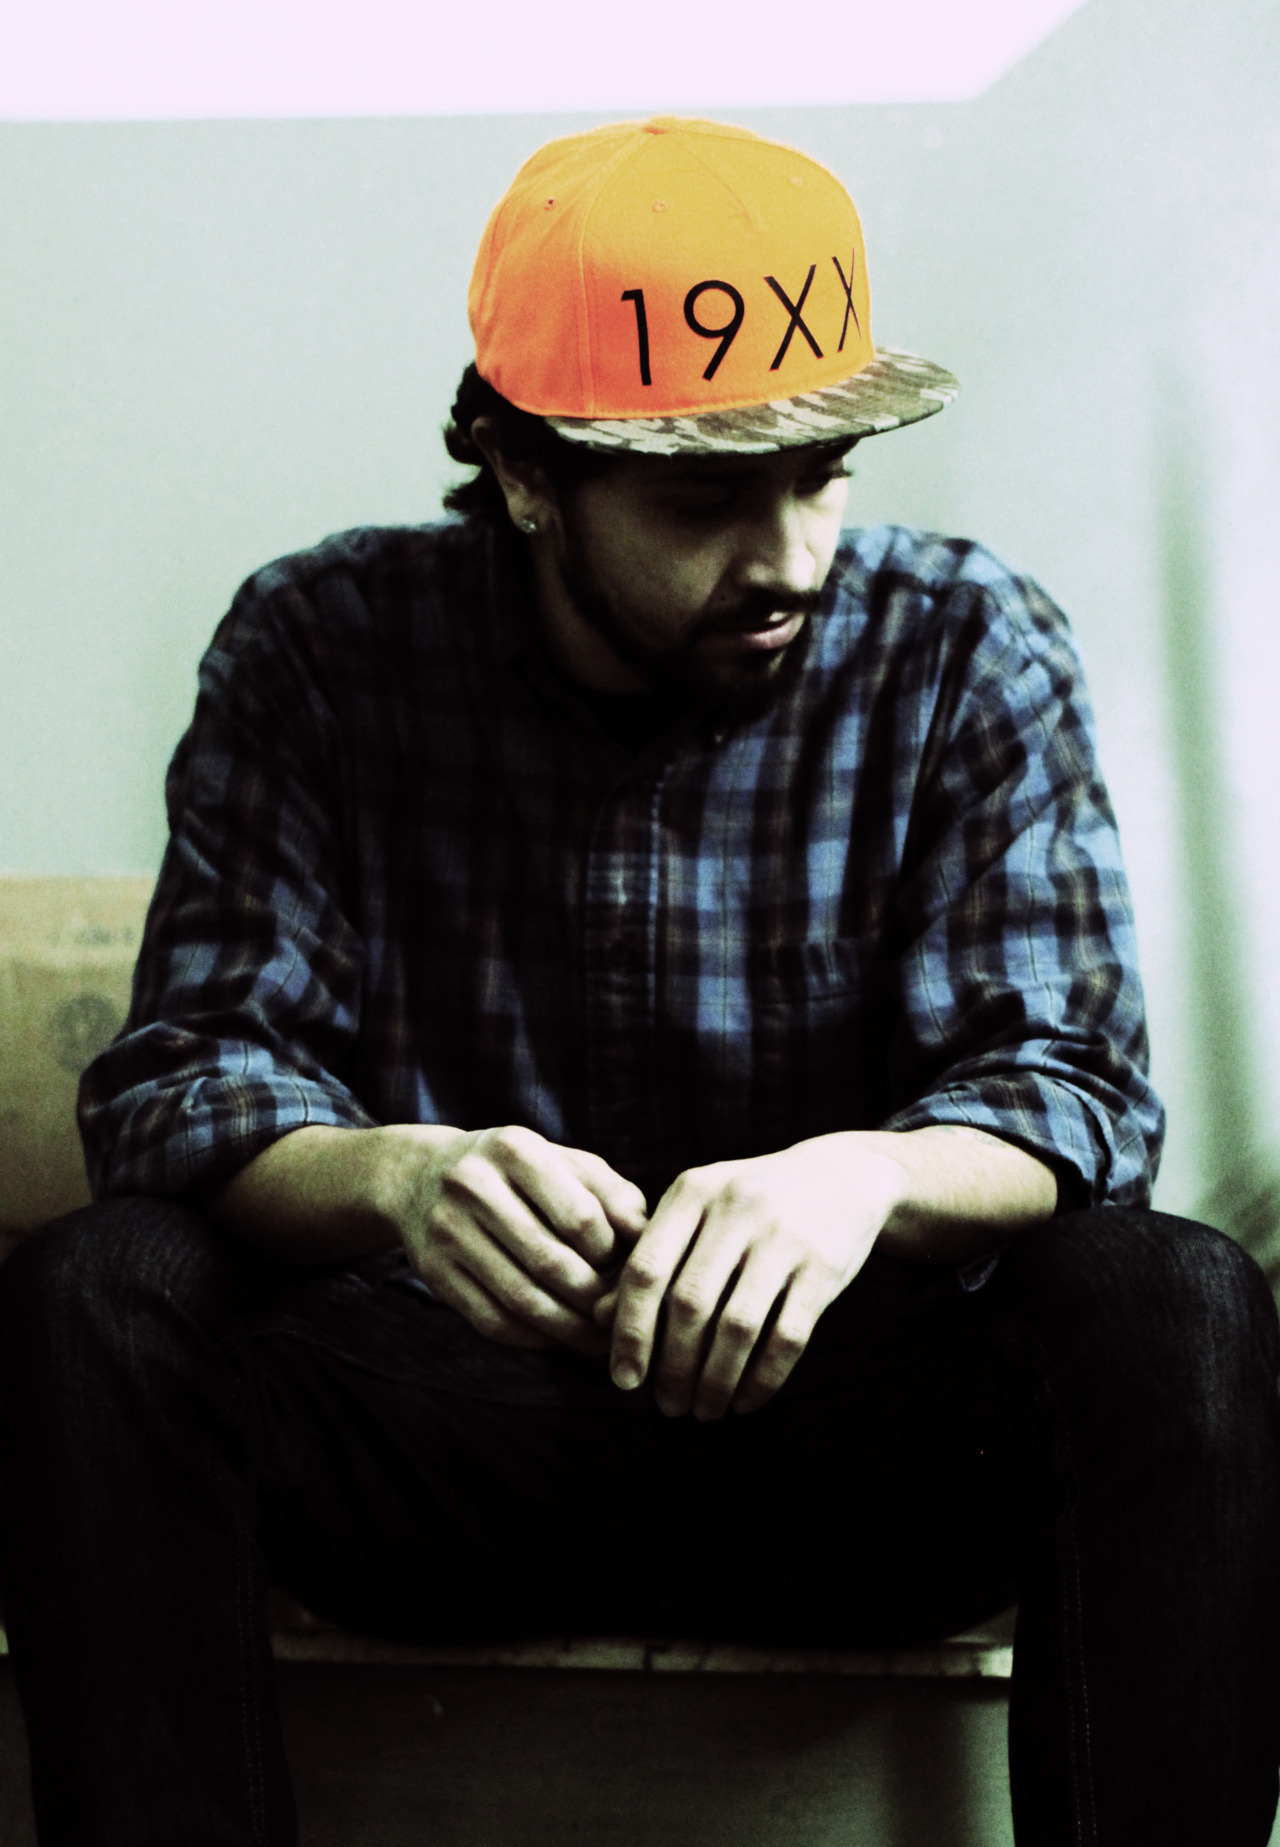 """19XX"" … DJ Scatterbrain repping the Decades Hat Co., NYC"